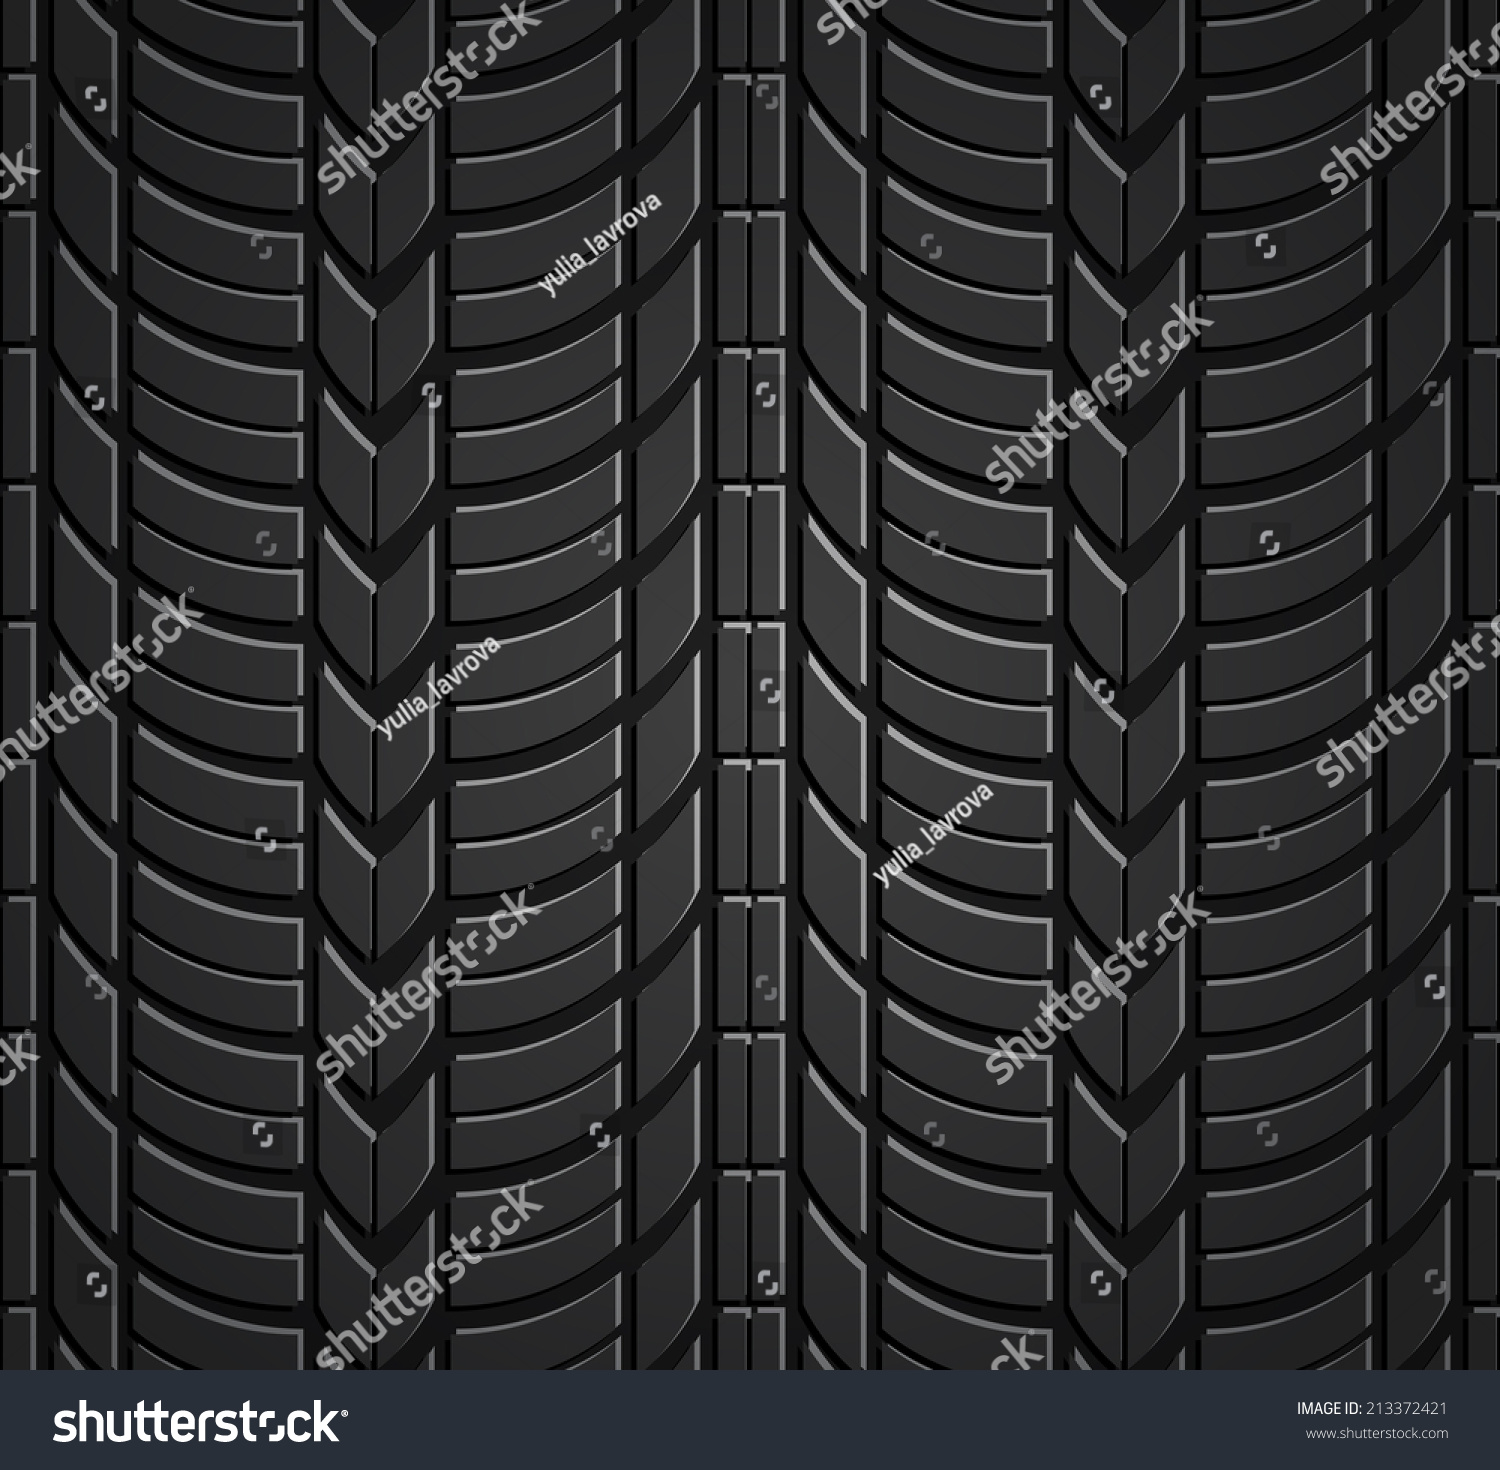 wheel tire seamless pattern vector realistic illustration road texture i32 realistic